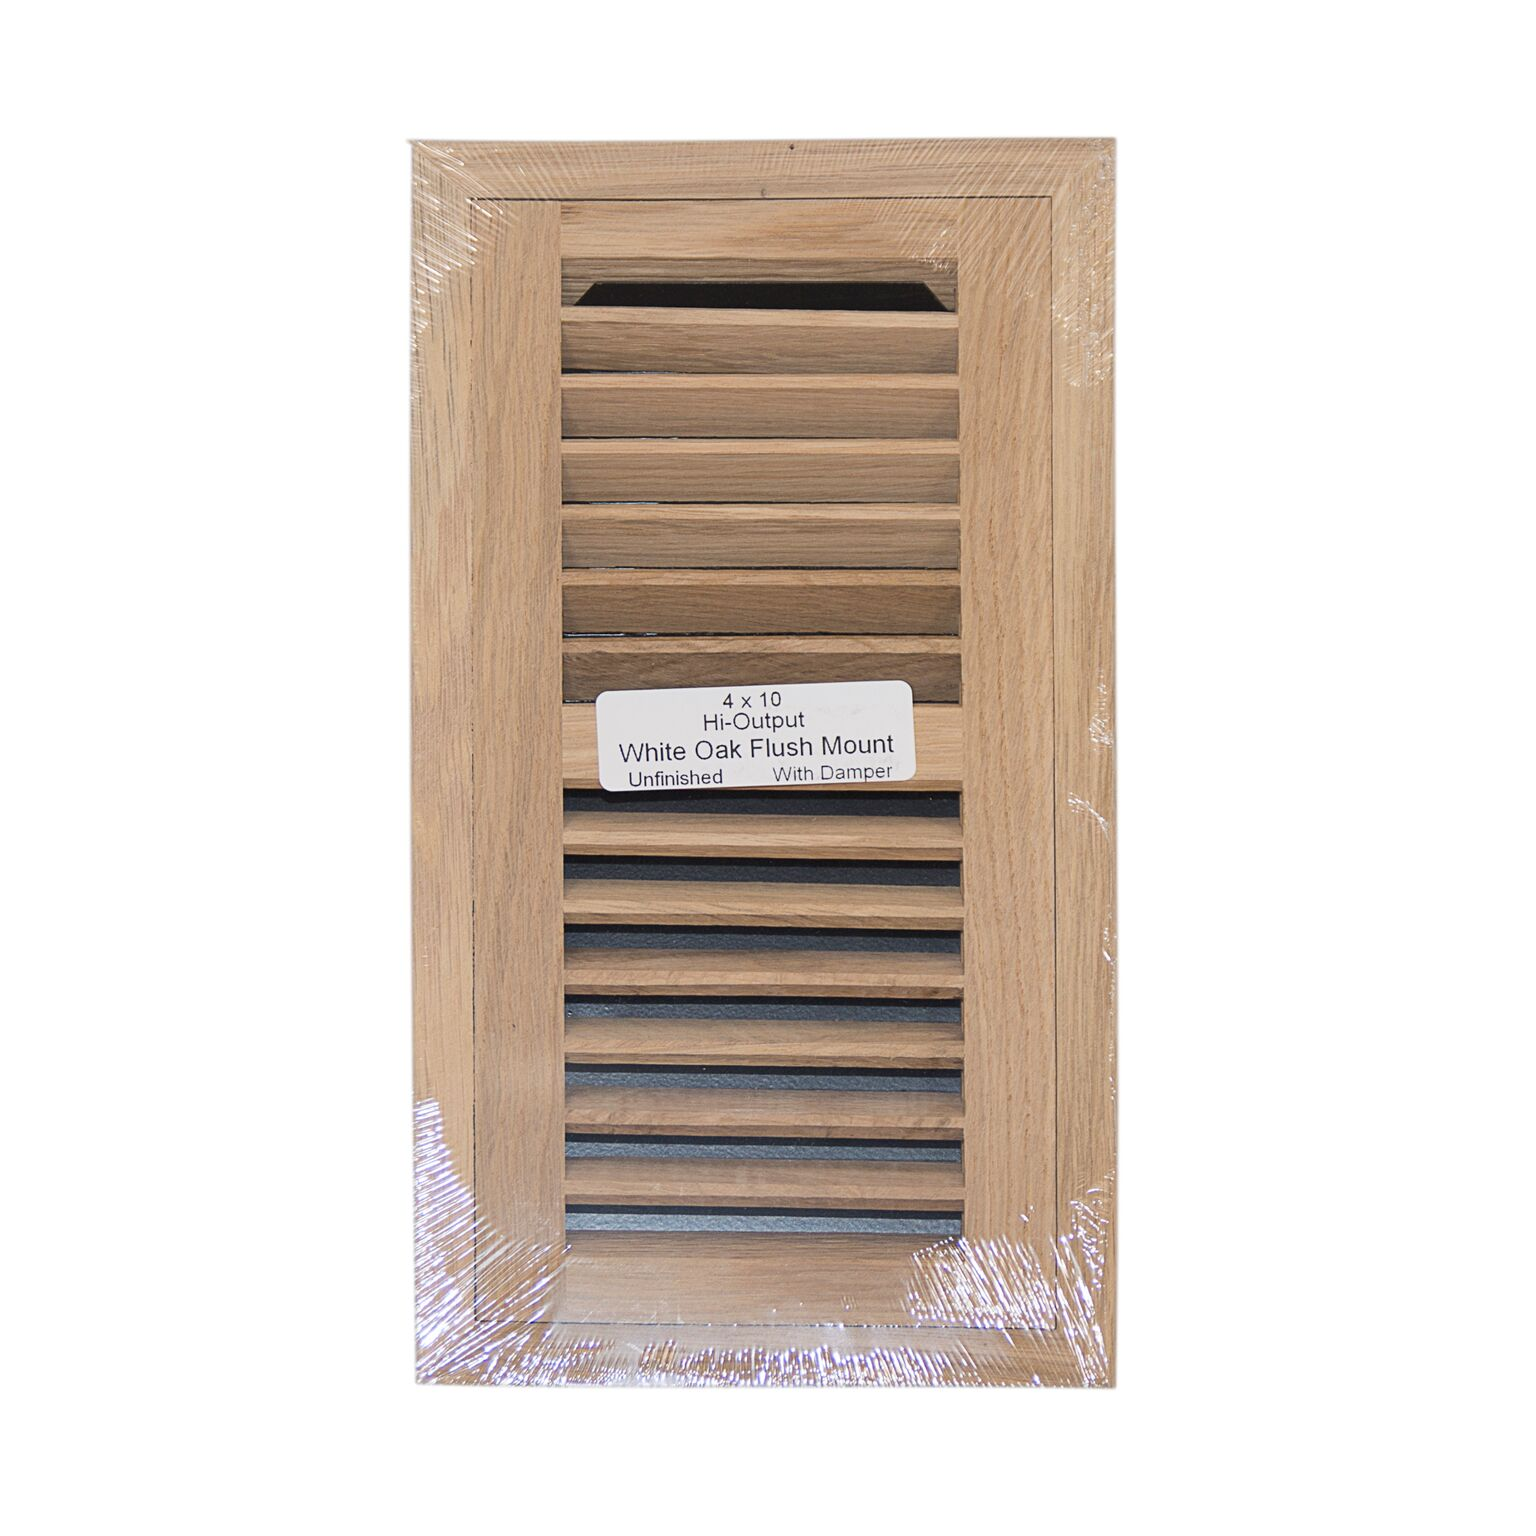 unfinished-white-oak-flush-mount-vent